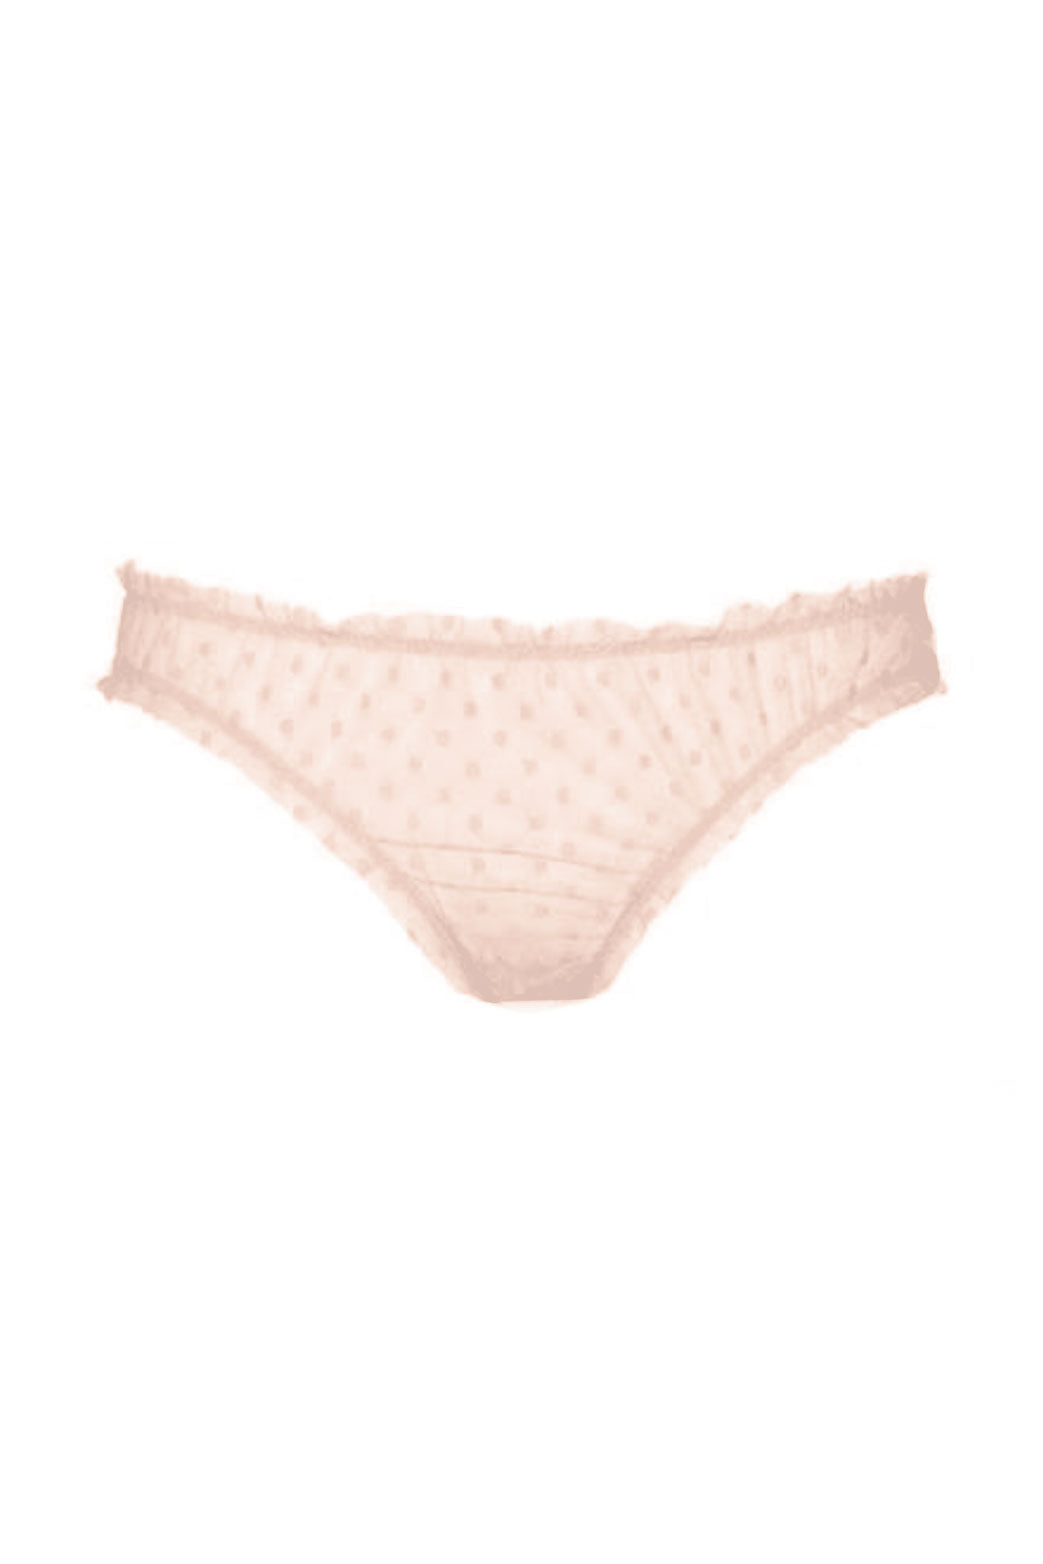 Peach Powder panties - Slip panties by bowobow. Shop on yesUndress